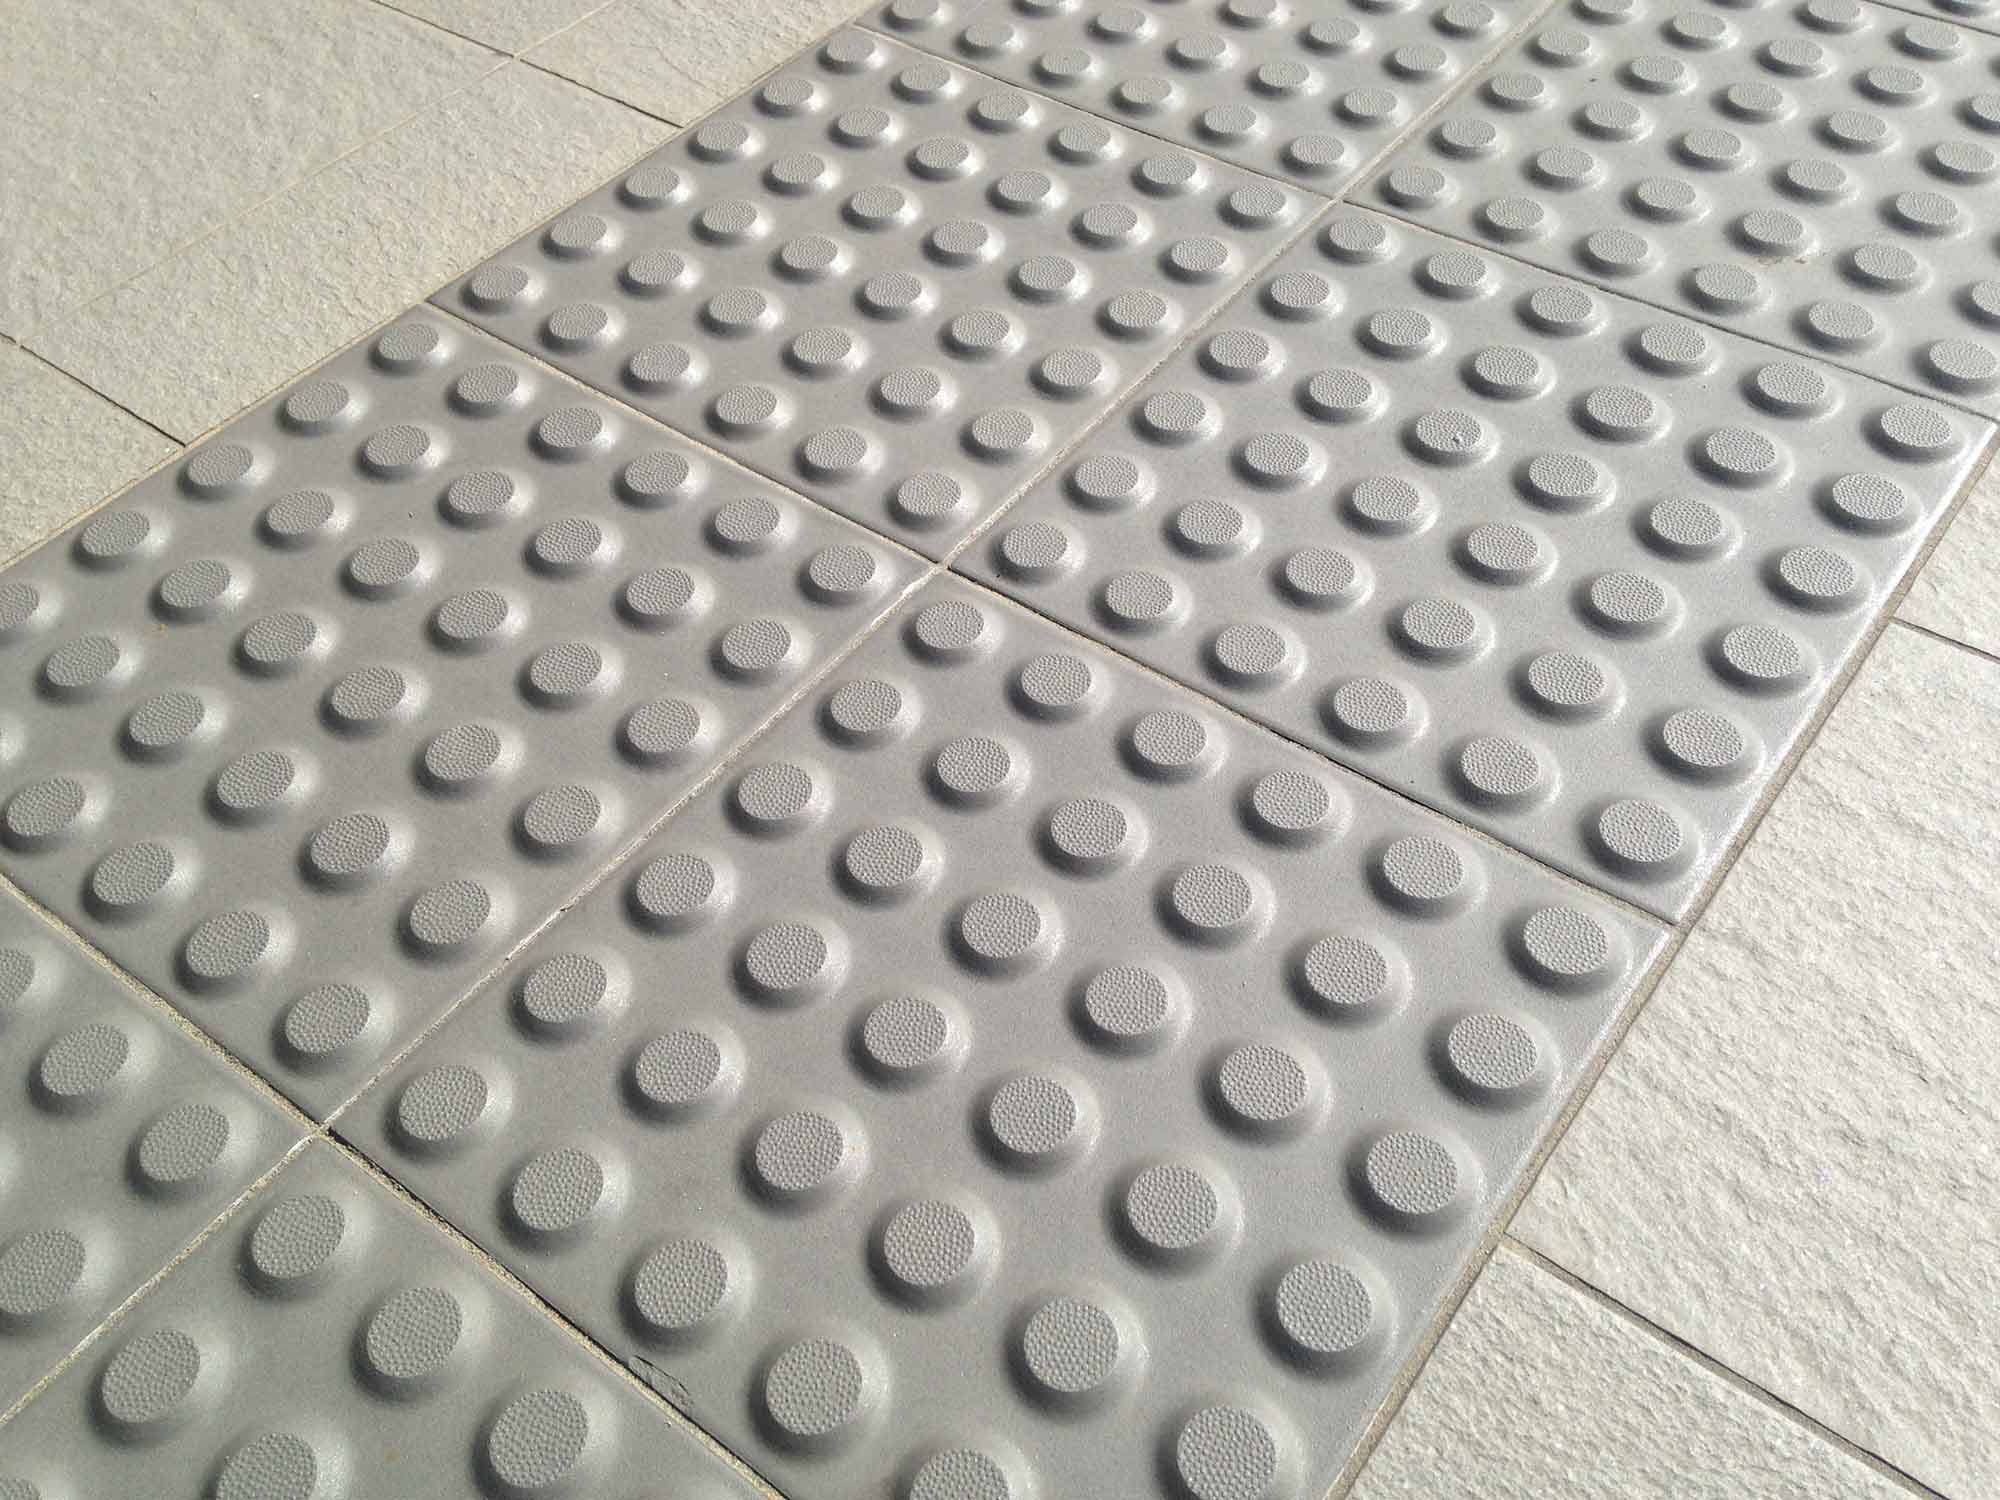 Tactile Pavers - Brisbane - Example from Eye Hospital - Southbank